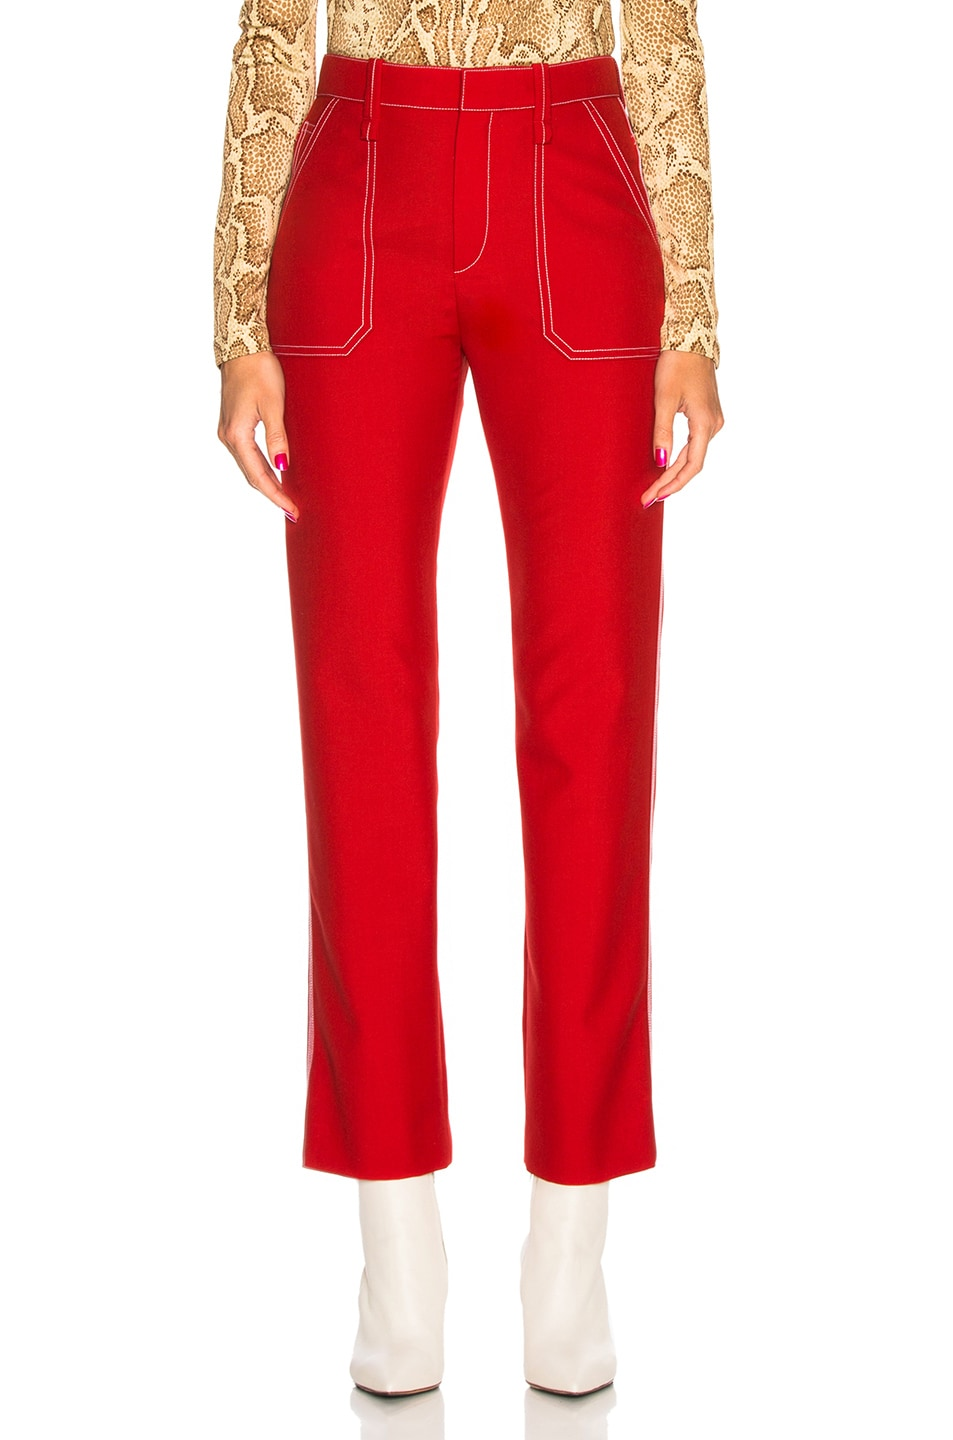 Image 1 of Chloe Contrast Stitching Trousers in Poppy Red